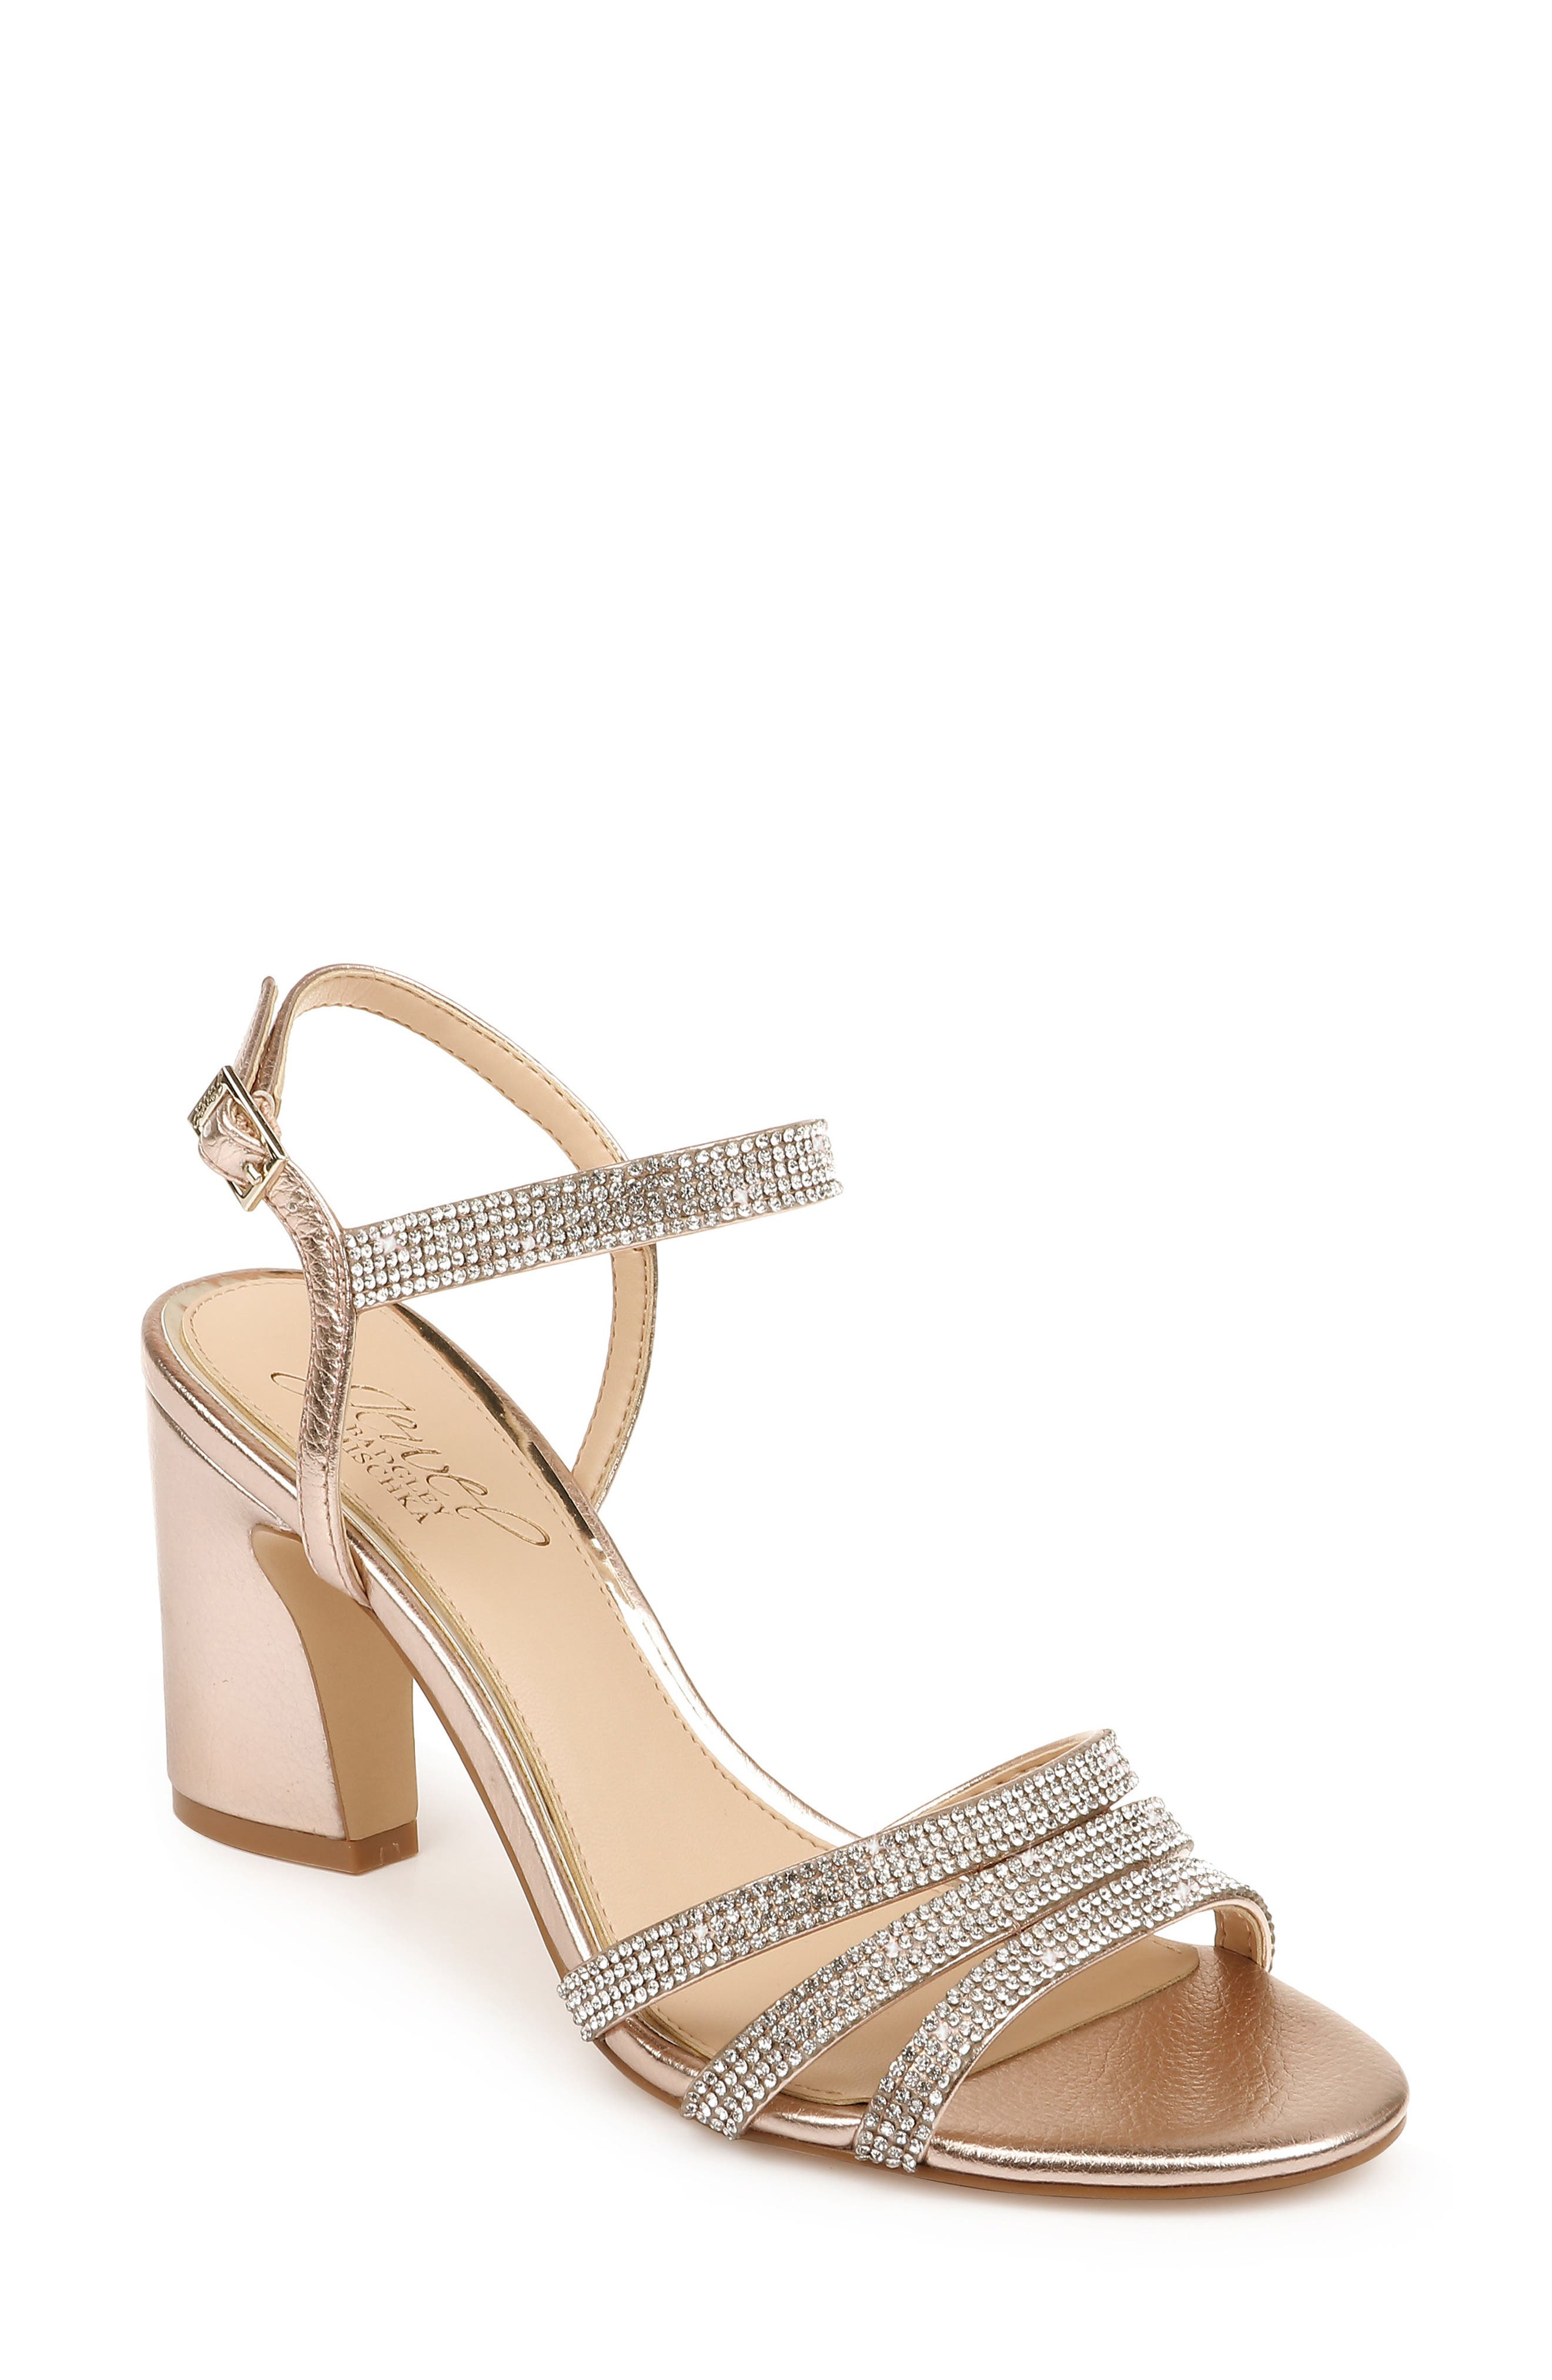 An architectural block heel brings throwback-inspired height to a strappy sandal embellished with sparkling crystals. Style Name: Jewel Badgley Mischka Brighton Sandal (Women). Style Number: 5913720. Available in stores.